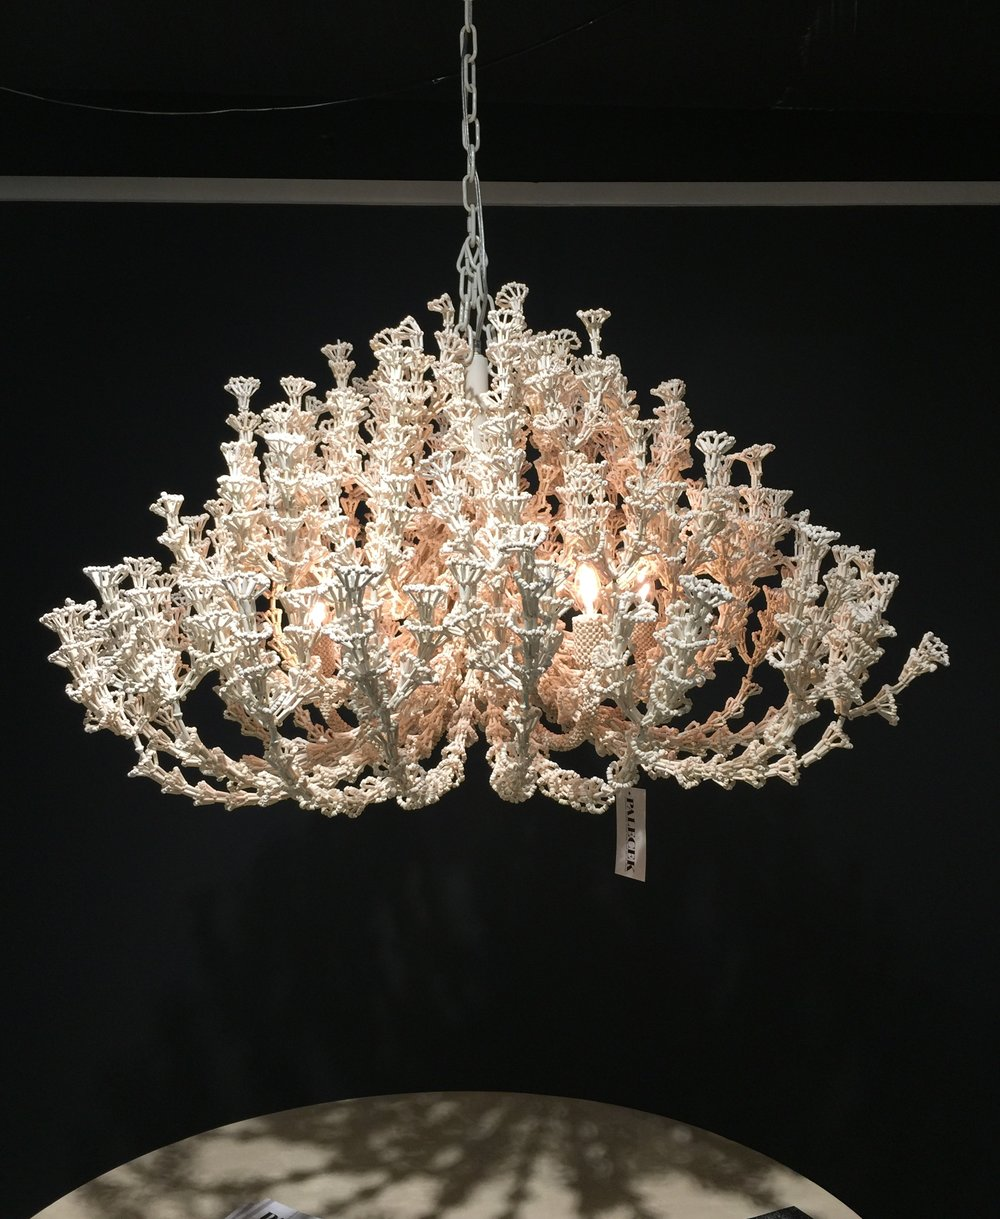 Stunning shell bead chandelier against a black wall in the Palacek showroom